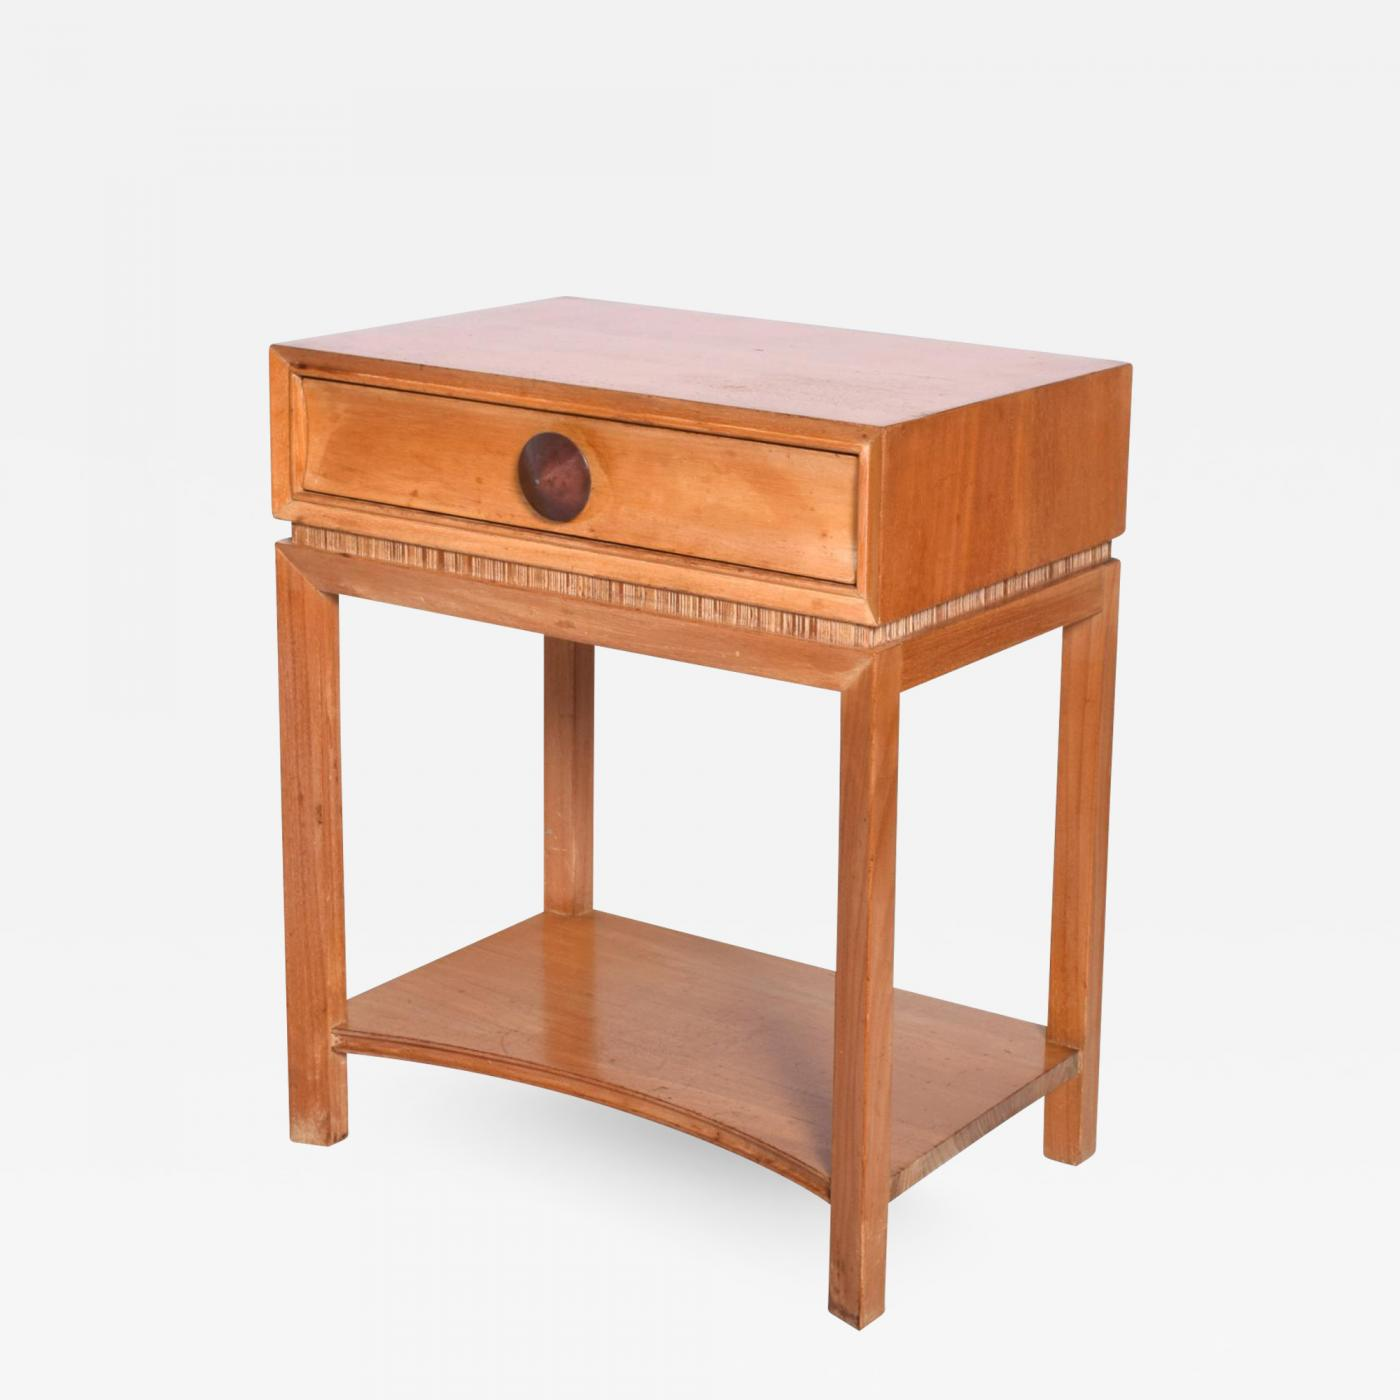 Paul Frankl Paul Frankl Fancy End Table Nightstand In Blonde Mahogany Art Deco Accent 1950s